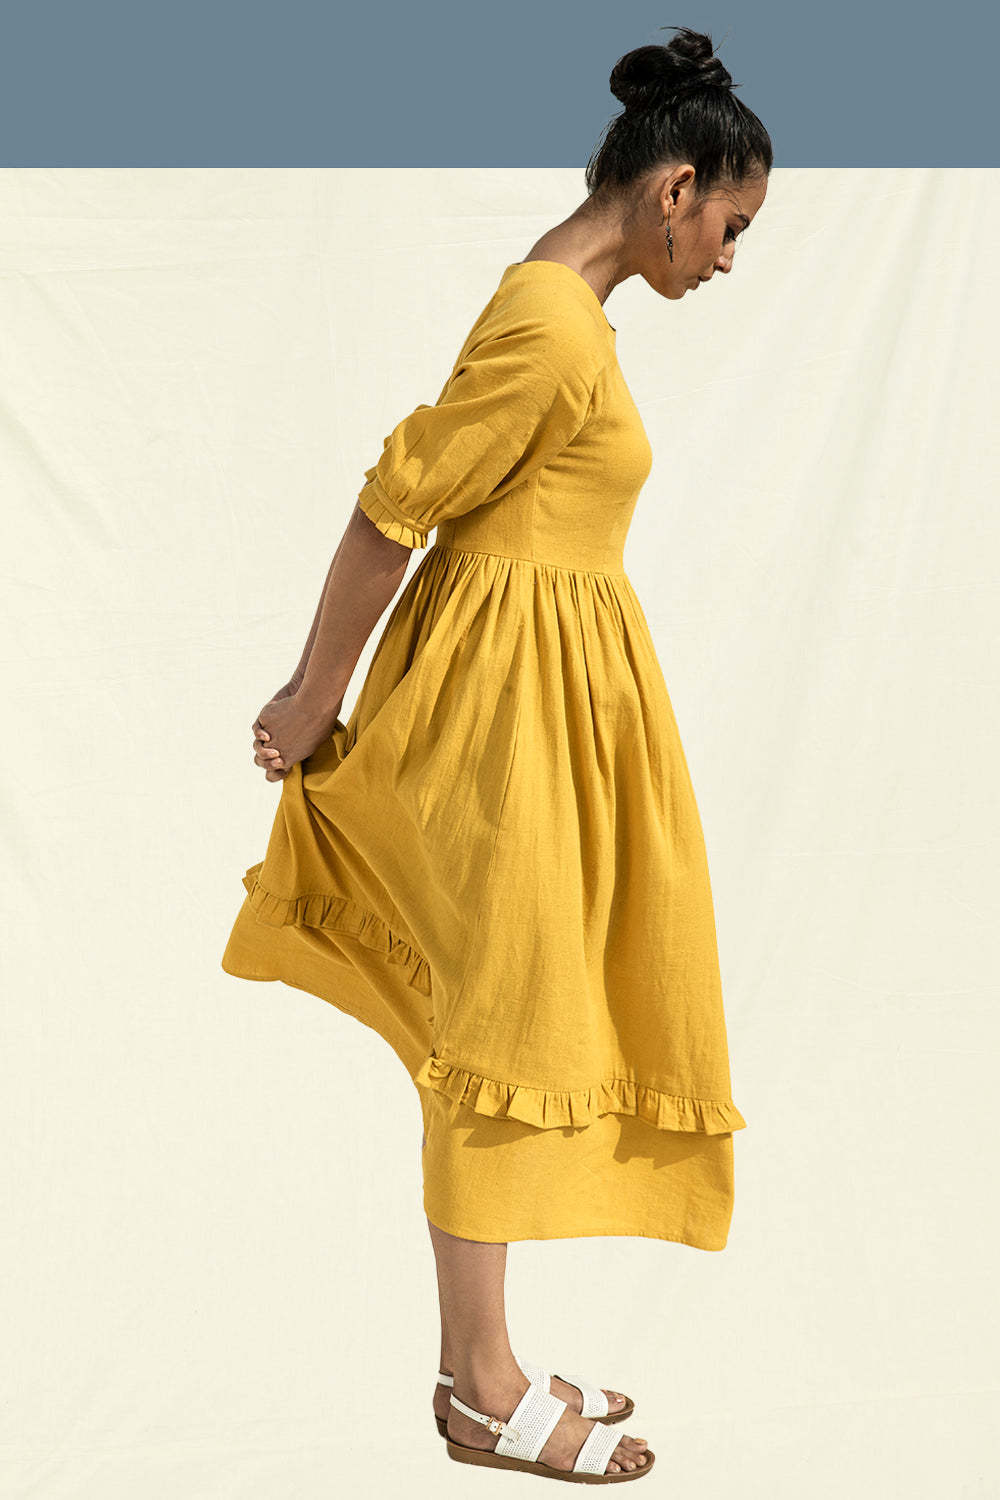 Khadi Cotton A-Line Dress in Yellow by Lake Peace, a PETA Approved Vegan Fashion Brand in India